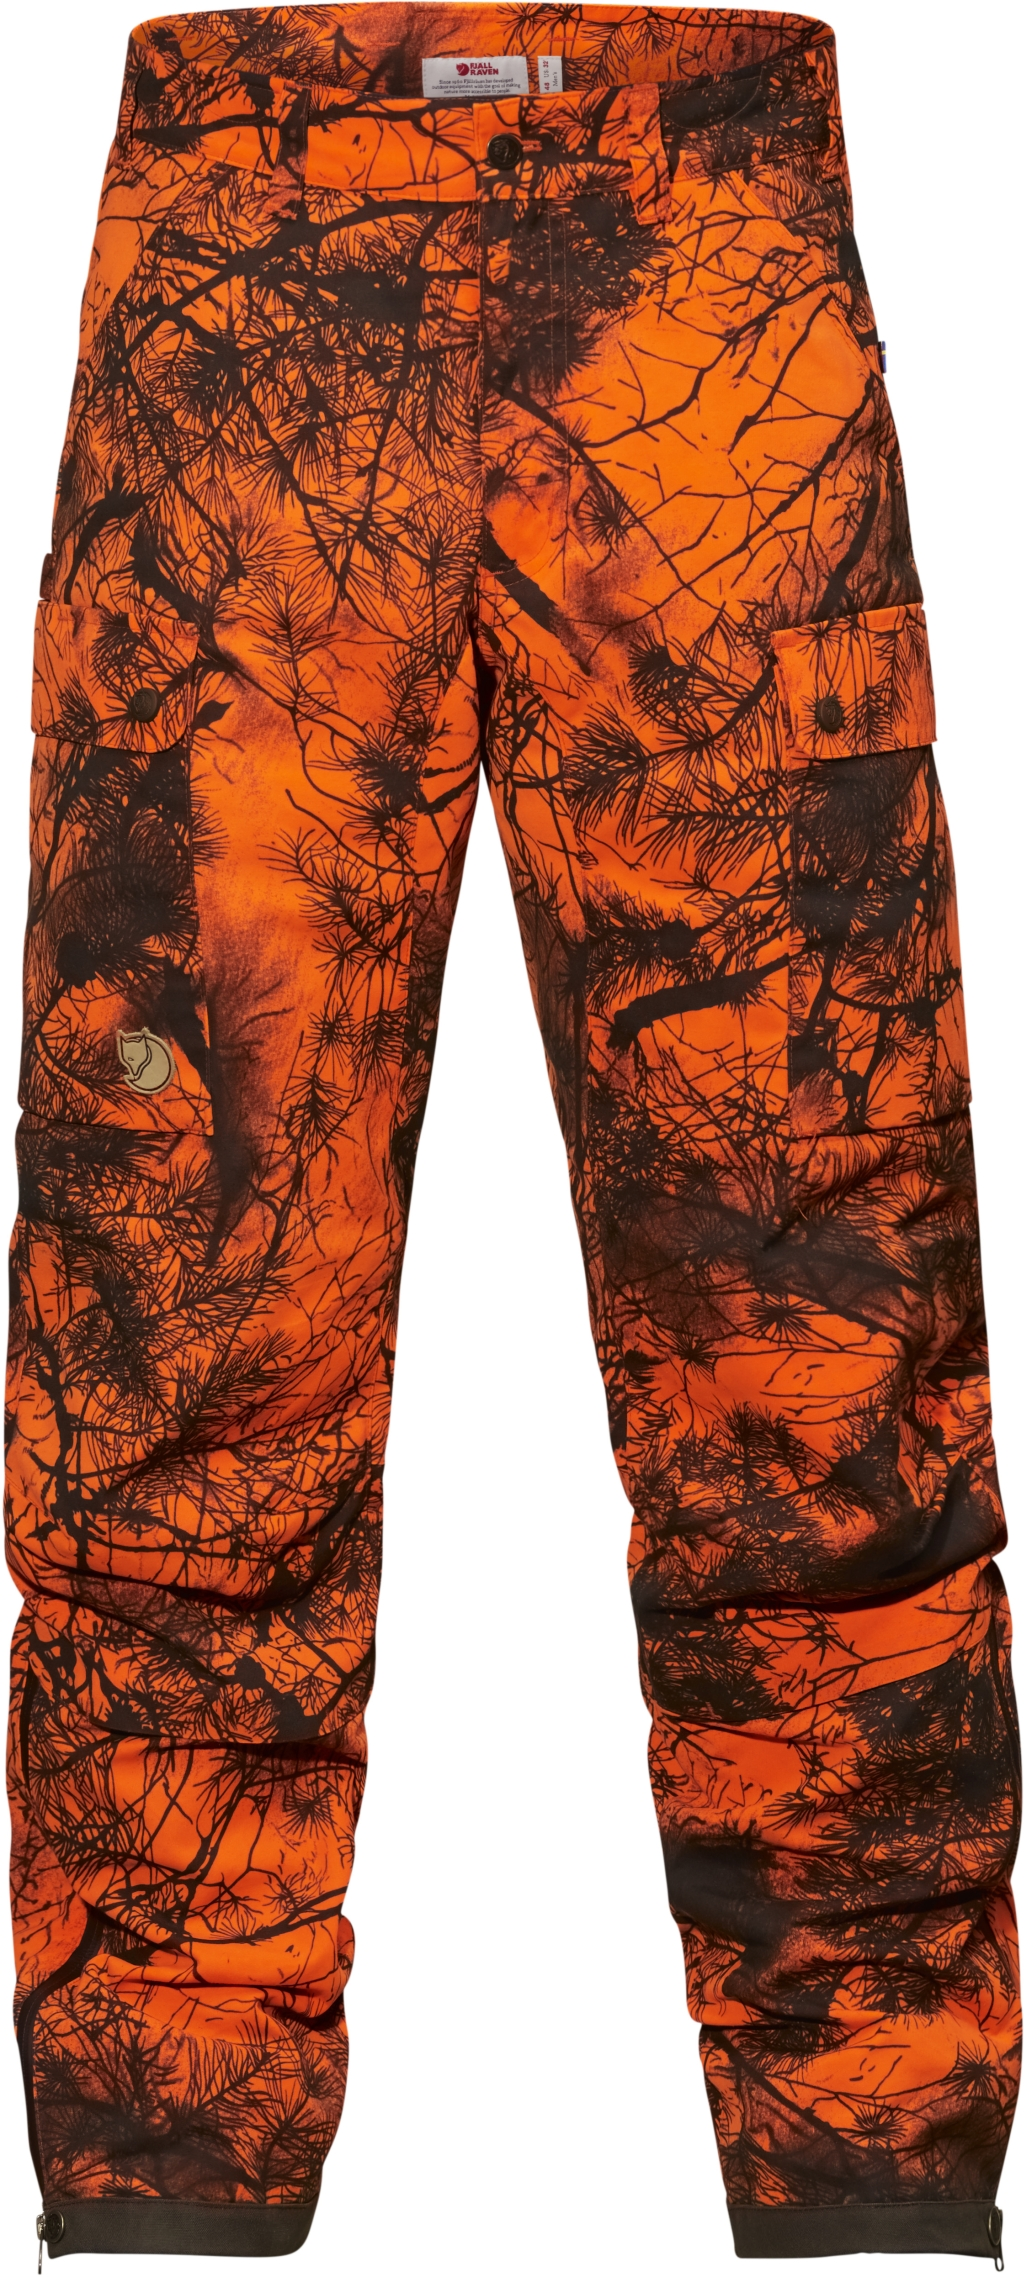 FjallRaven Varmland Trousers Camo Orange Camo-30